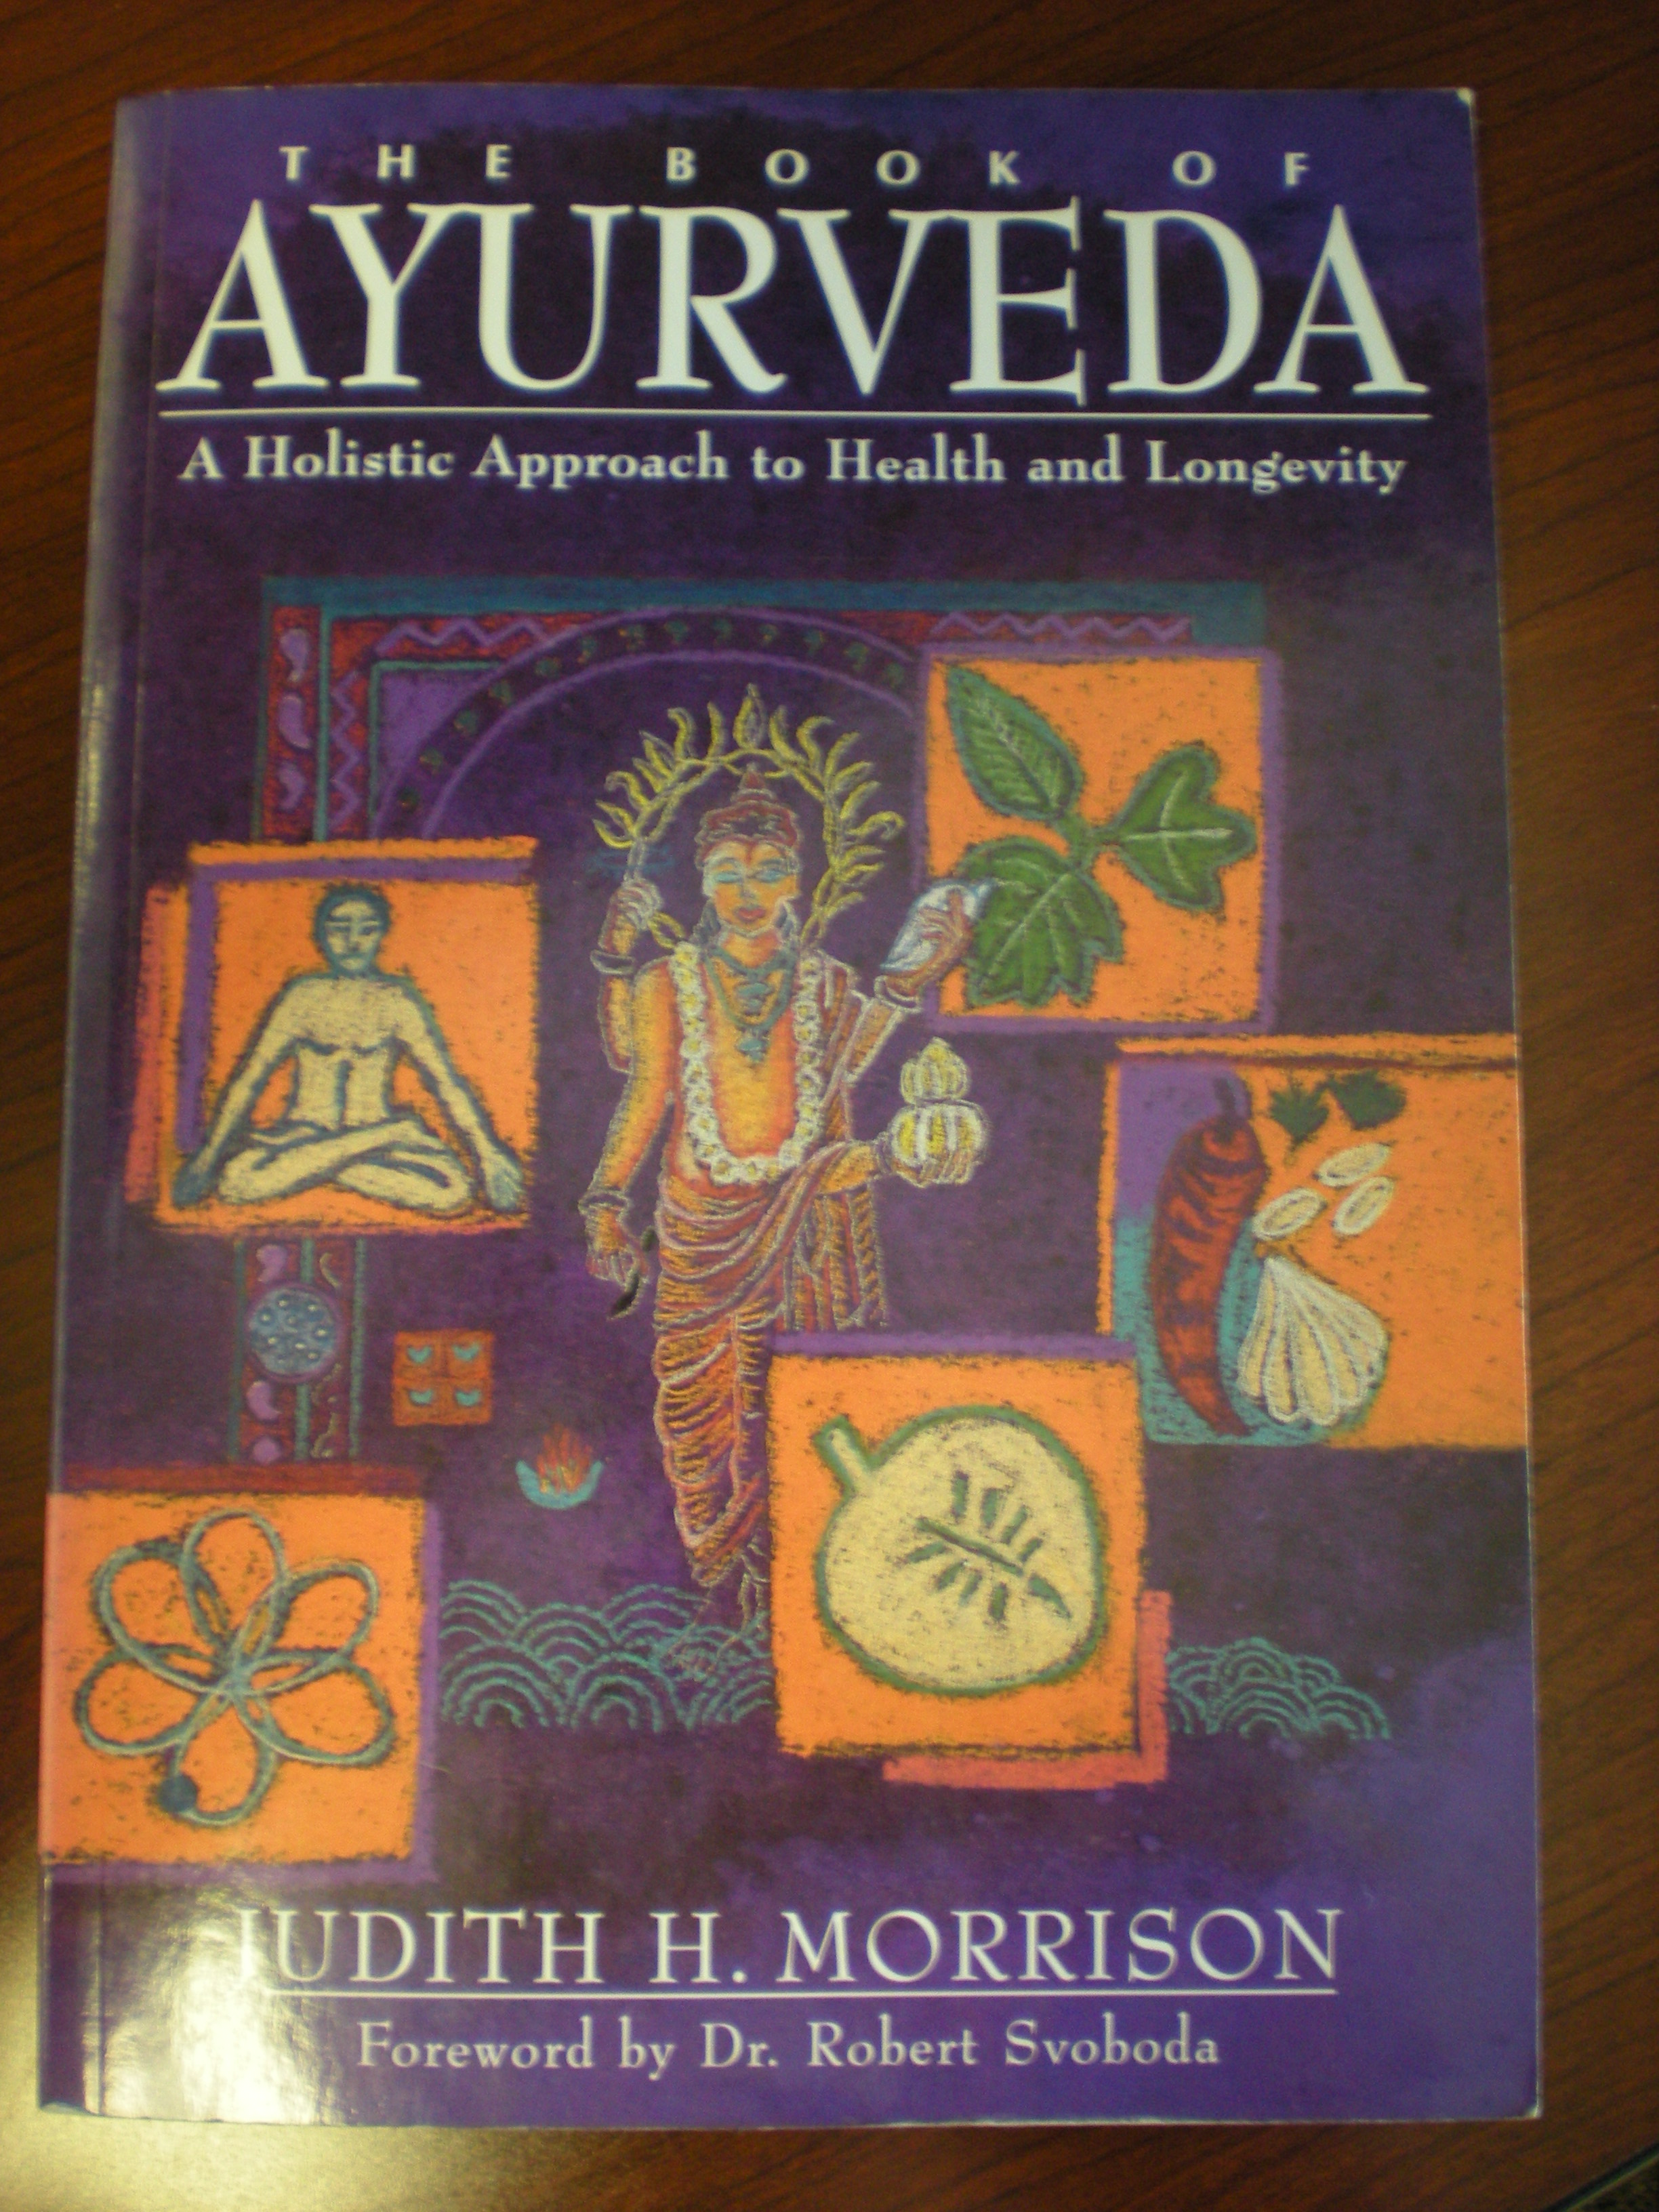 dscn5772 The Book of Ayurveda